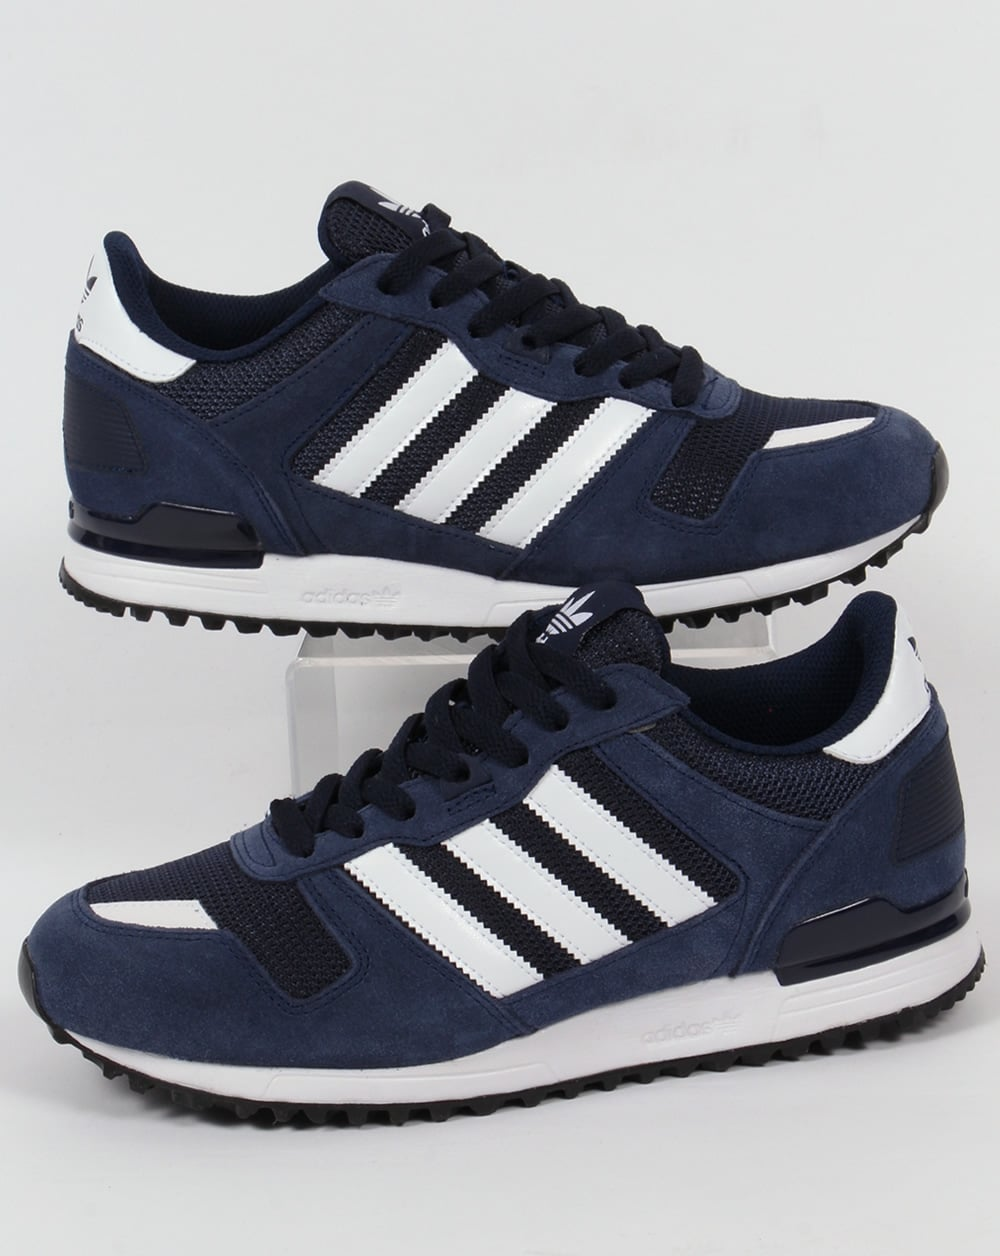 Adidas ZX 700 Trainers NavyWhite